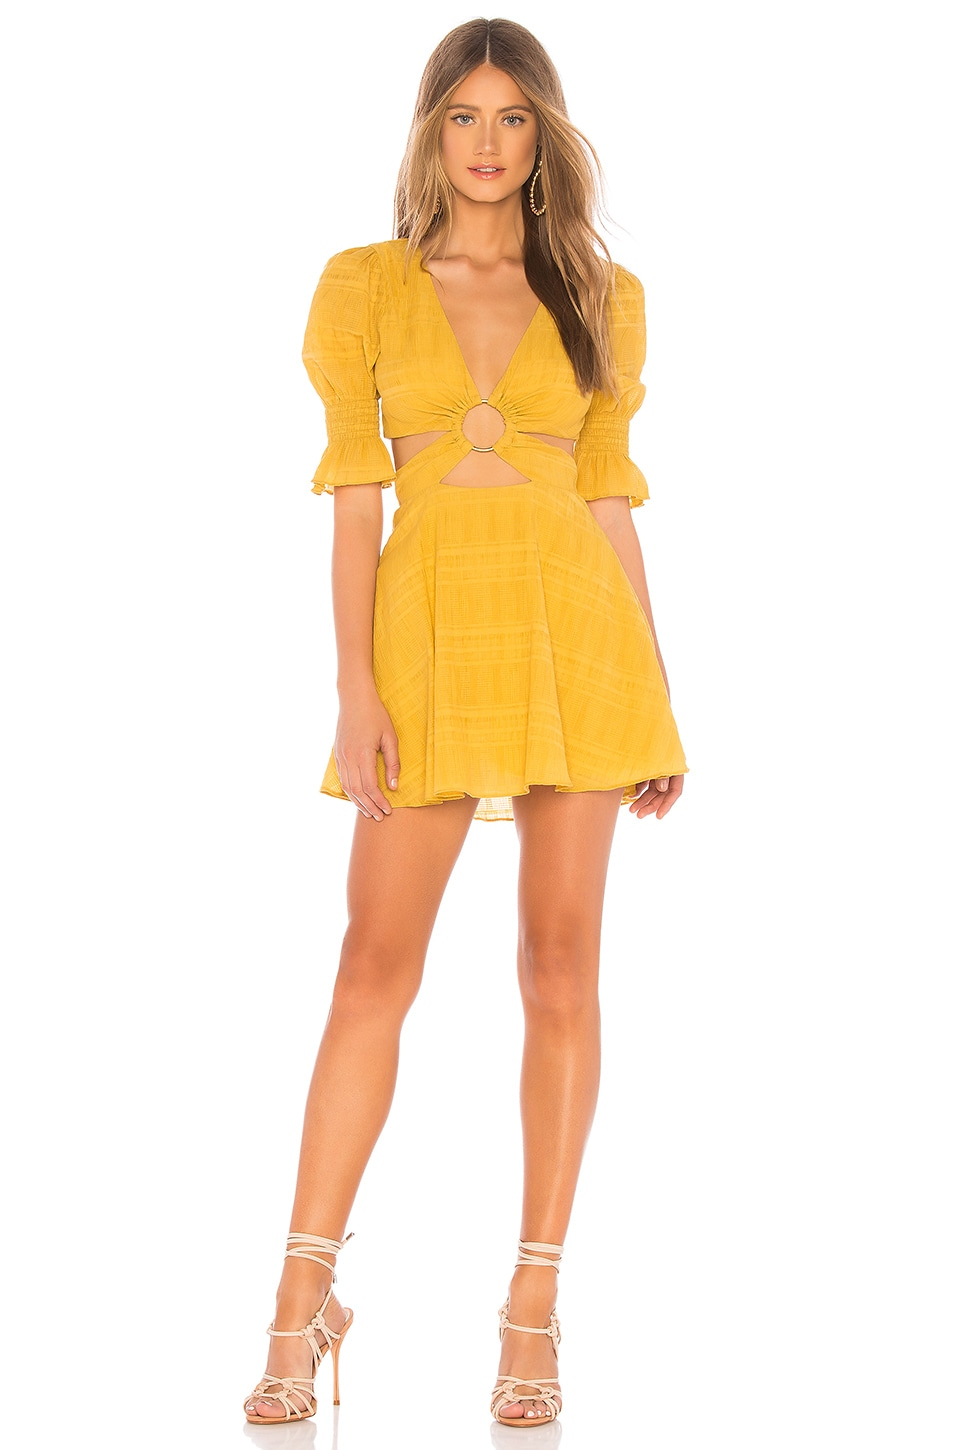 Tularosa Nanette Dress in Mustard Yellow